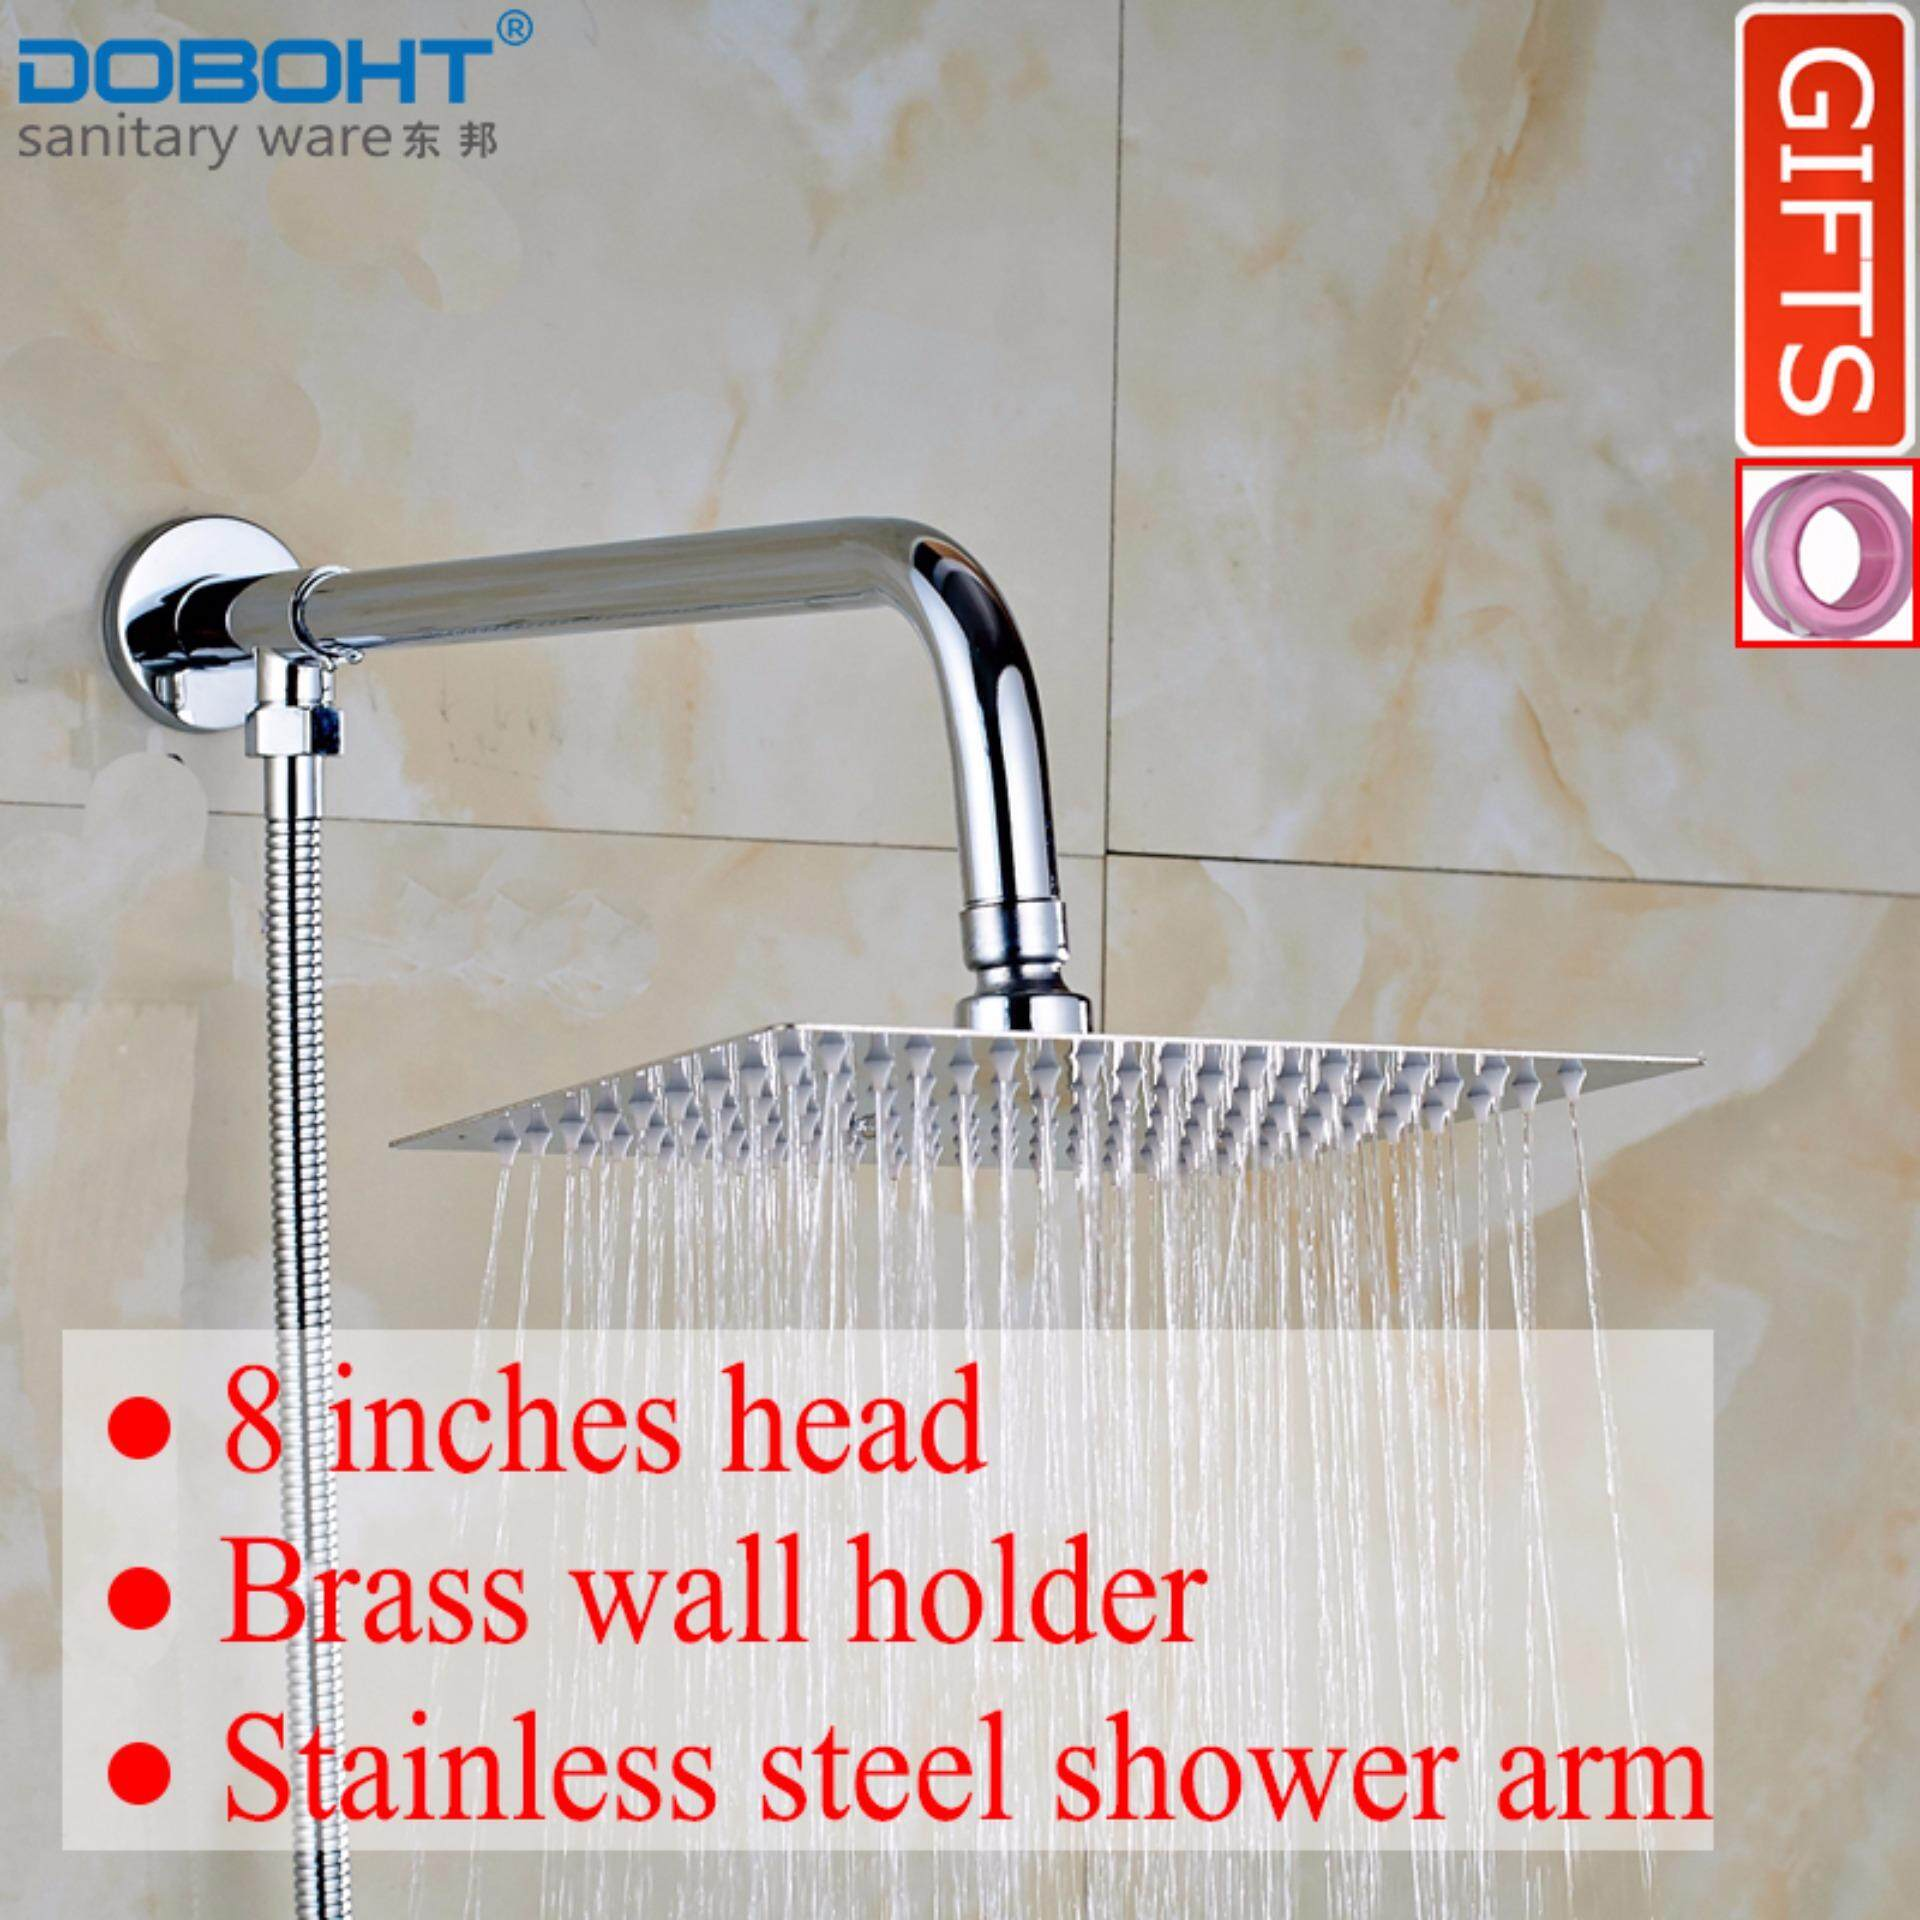 ซื้อ Doboht Bathroom Home Shower Set With 8 Inch Stainless Steel Shower Head And Shower Arms And 1 5M Hose Chrome Intl Doboht